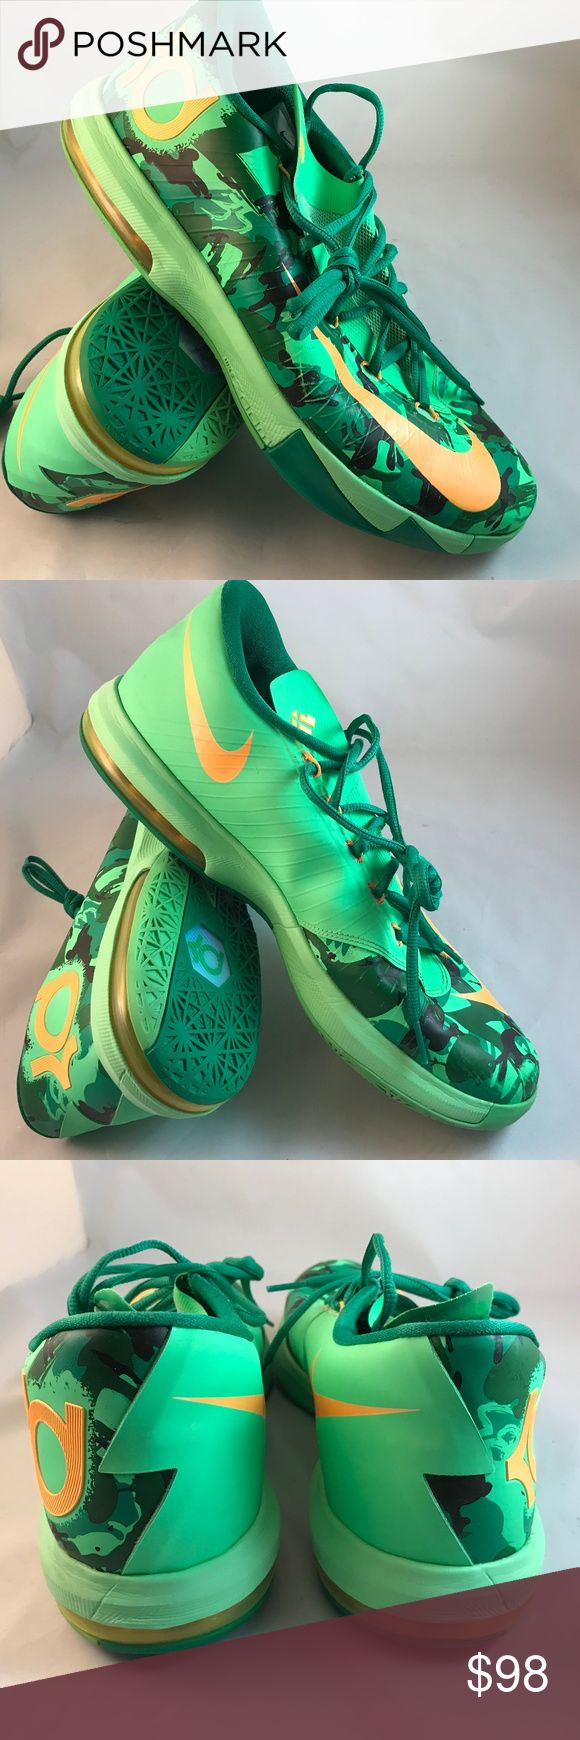 NIKE KD 6 Kevin Durant Easter Green Marigold sz 13 NIKE KD 6 Kevin Durant Easter Green Marigold sz 13, 47.5 EUR in excellent condition. The only visible issue is some minor rubbing one of the swooshes. The air bladders are filled and tight and comes with original insoles NIKE Shoes Athletic Shoes